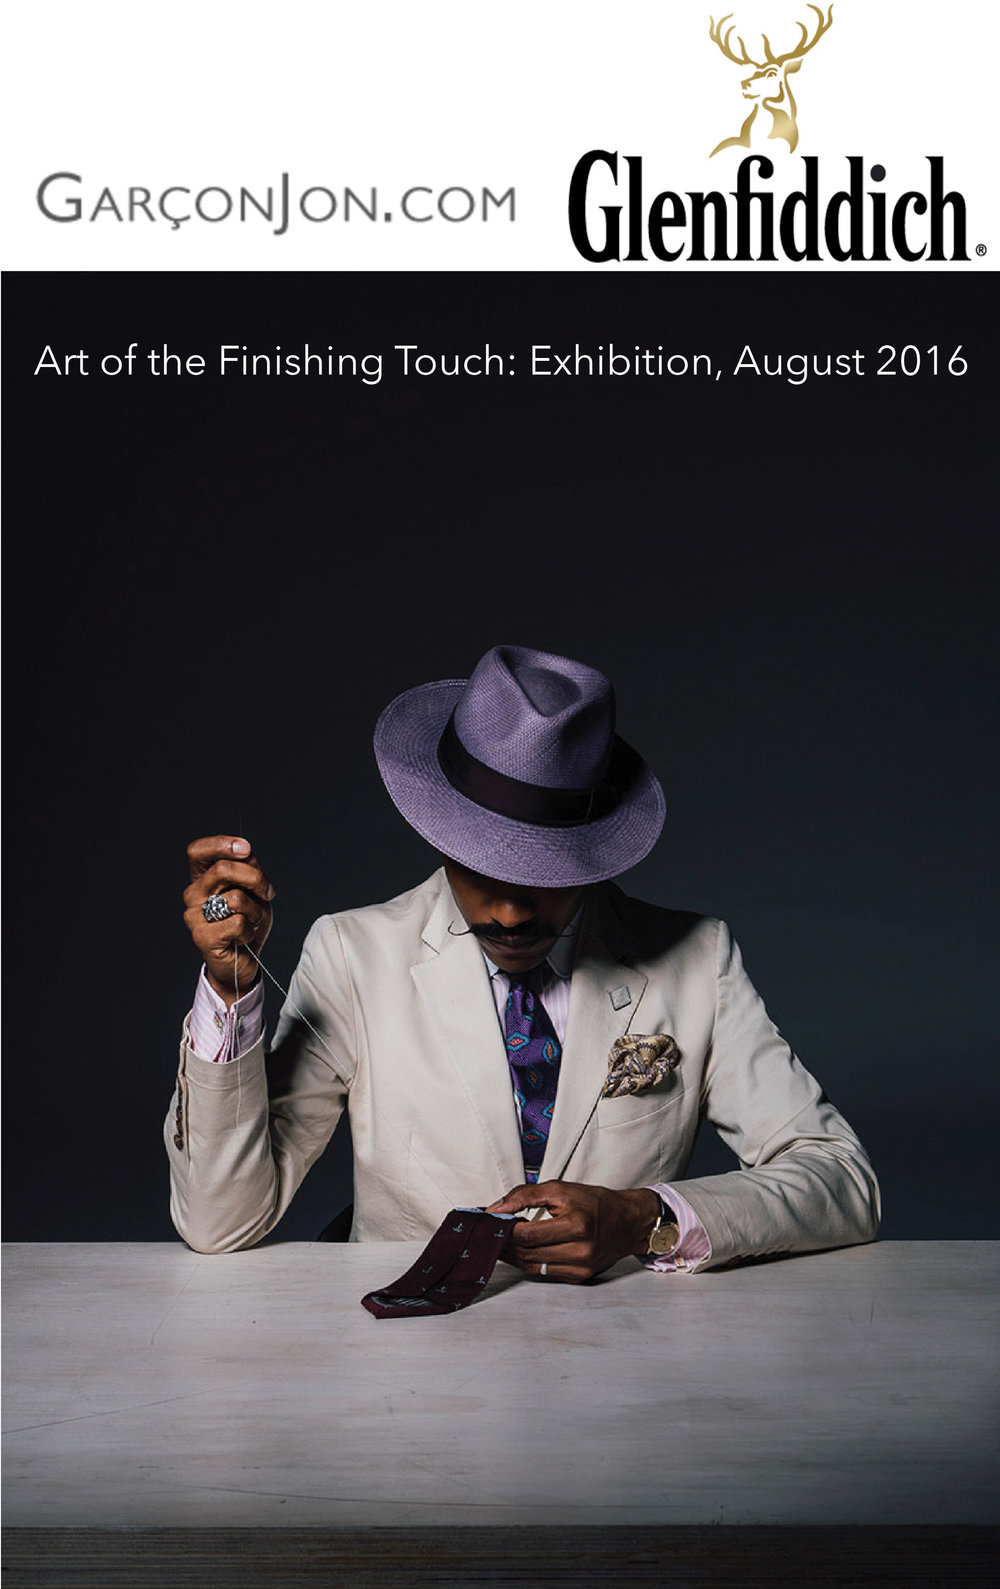 Shaun Gordon featured in Art Of The Finishing Touch Exhibition by GarconJon. Aug 2016.